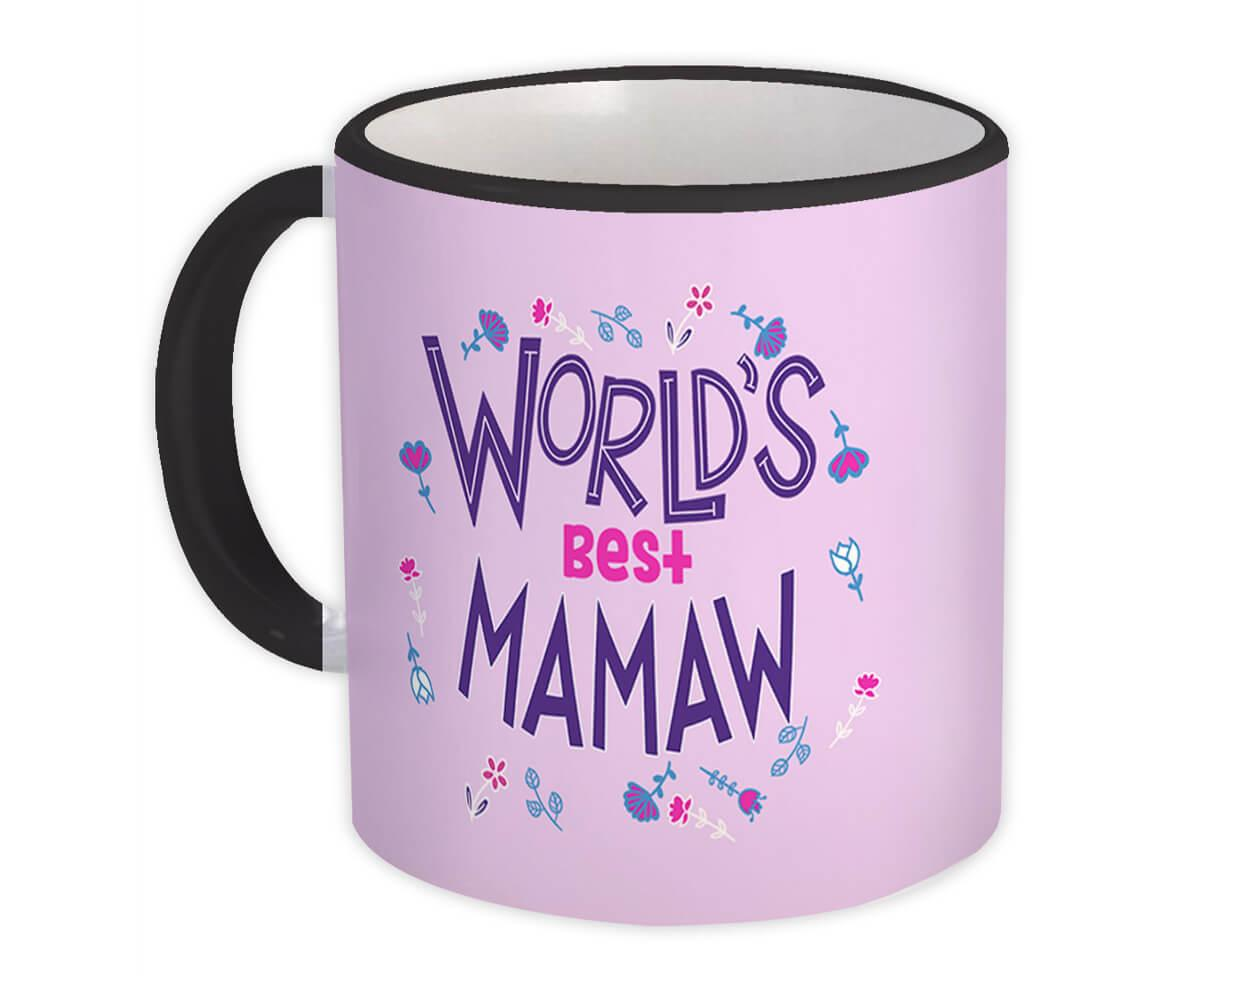 Worlds Best MAMAW : Gift Mug Great Floral Birthday Family Grandma Grandmother